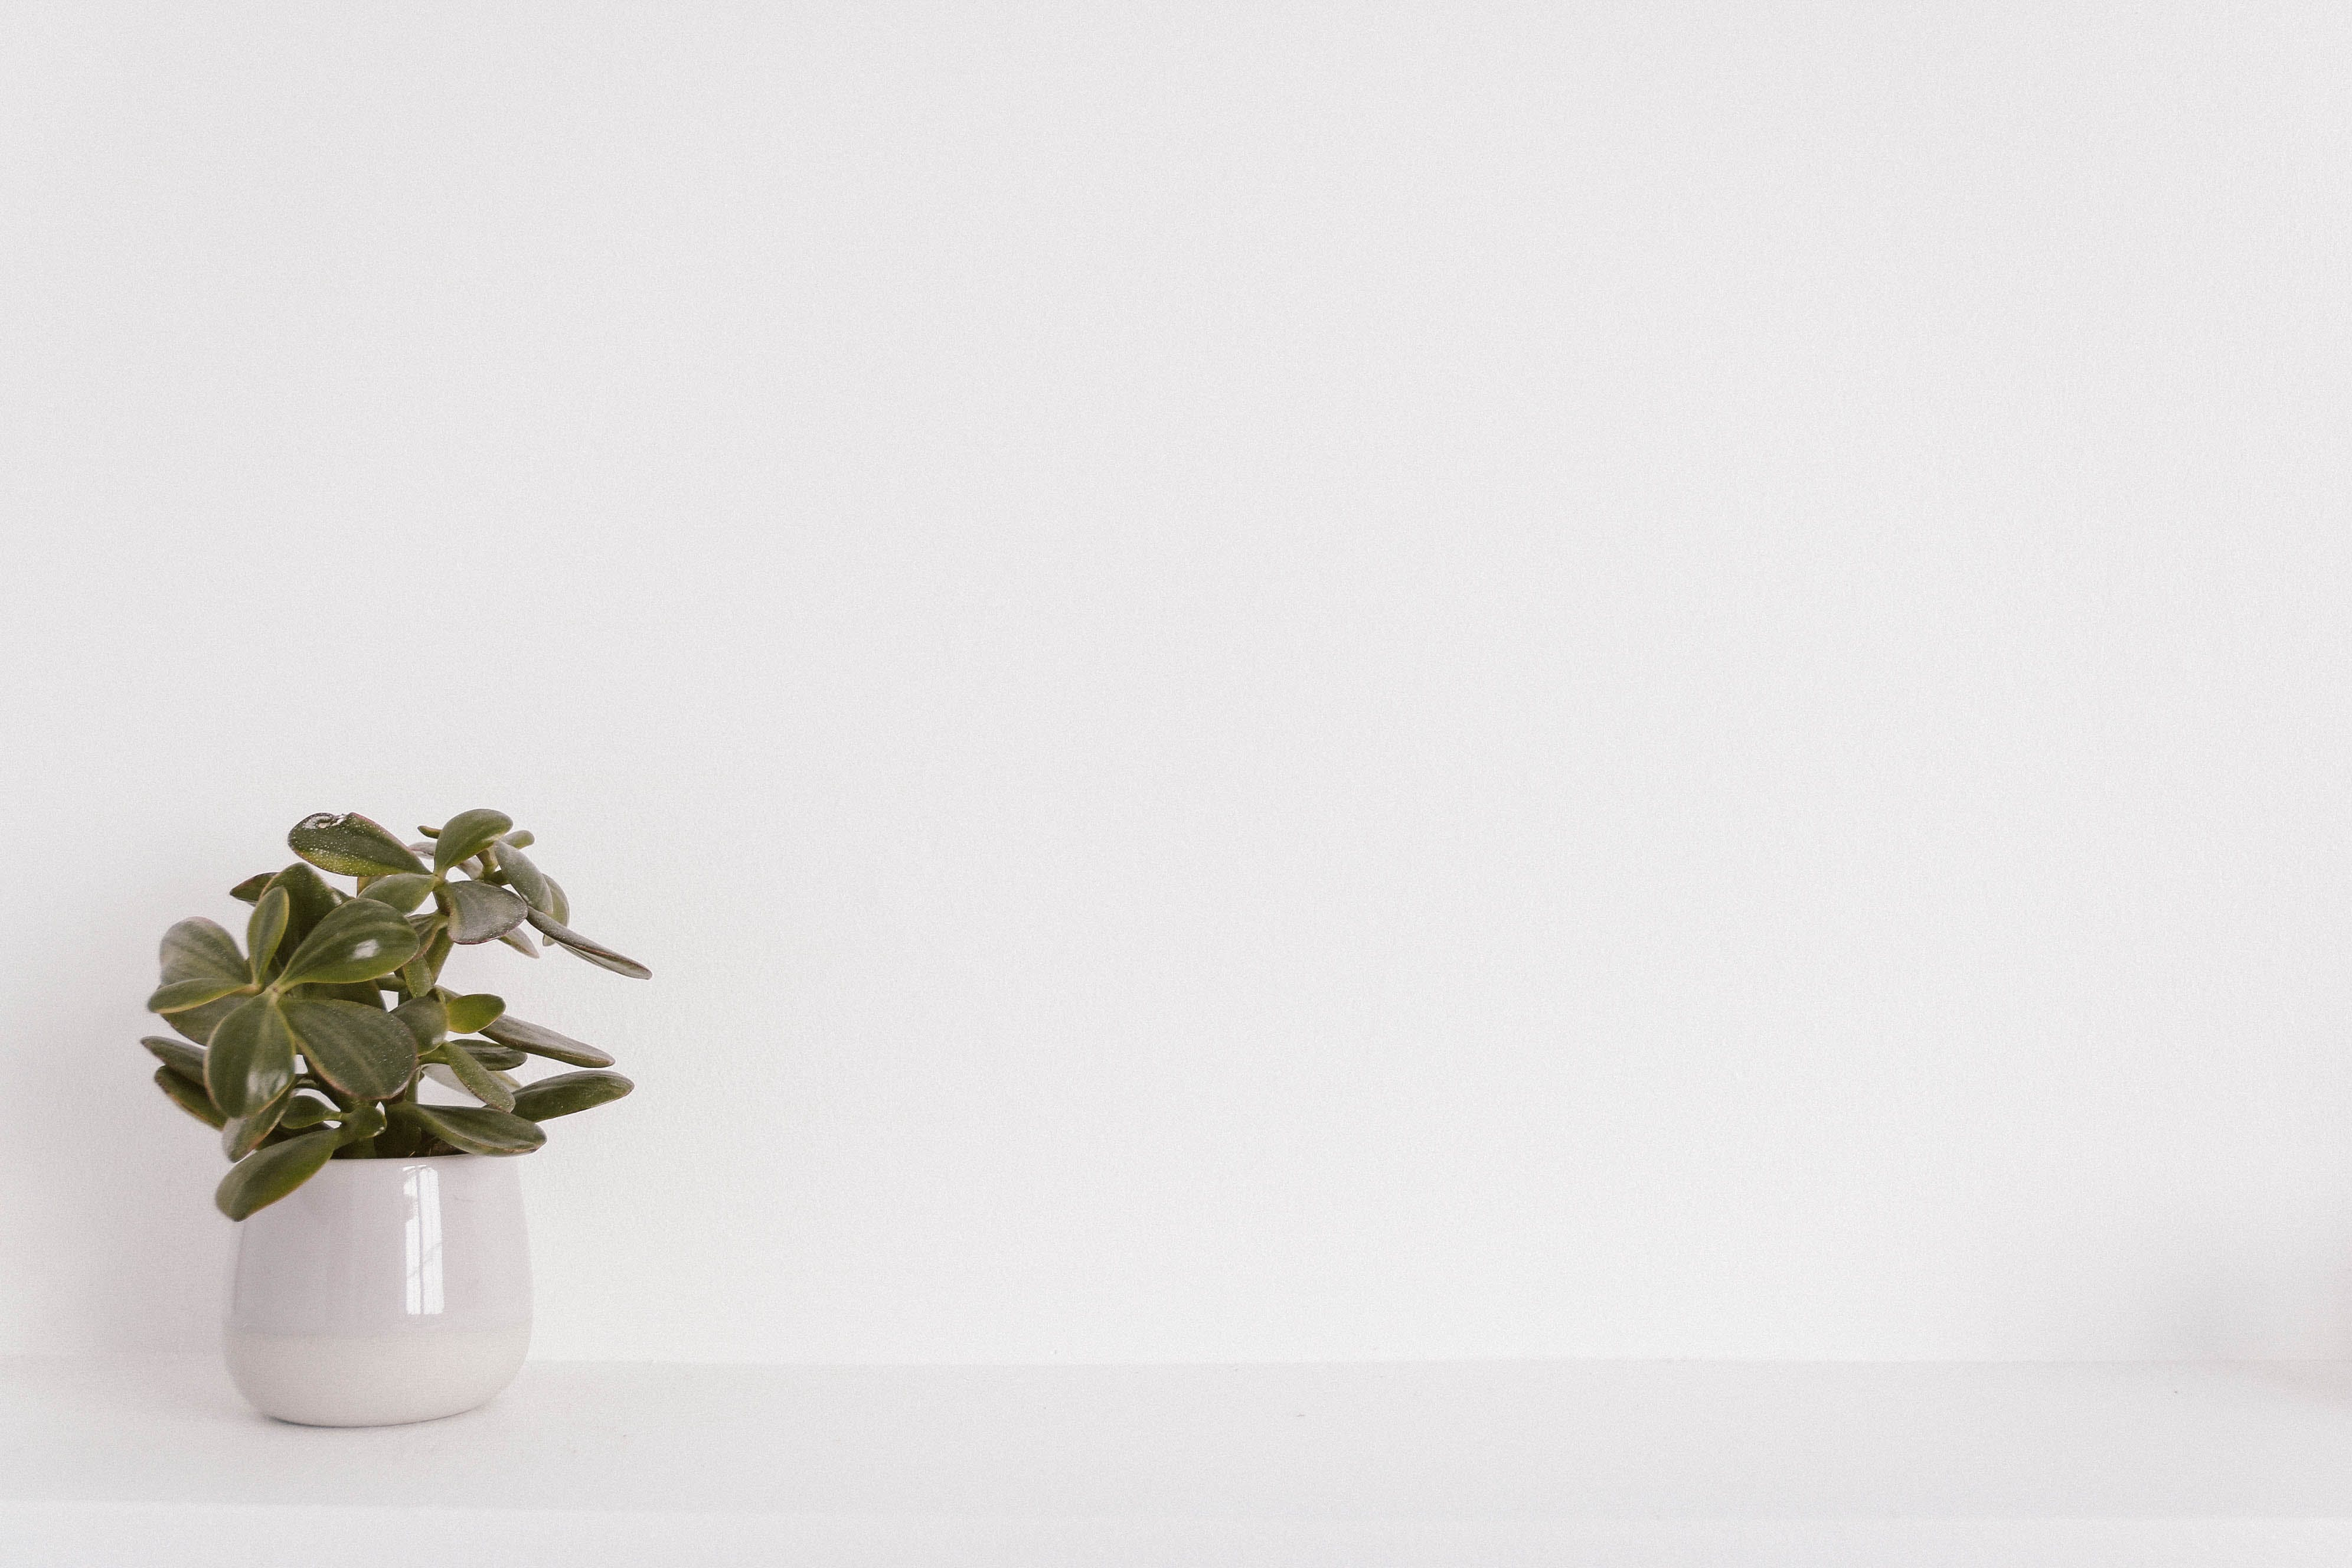 Green Potted Plant on White Ceramic Vase